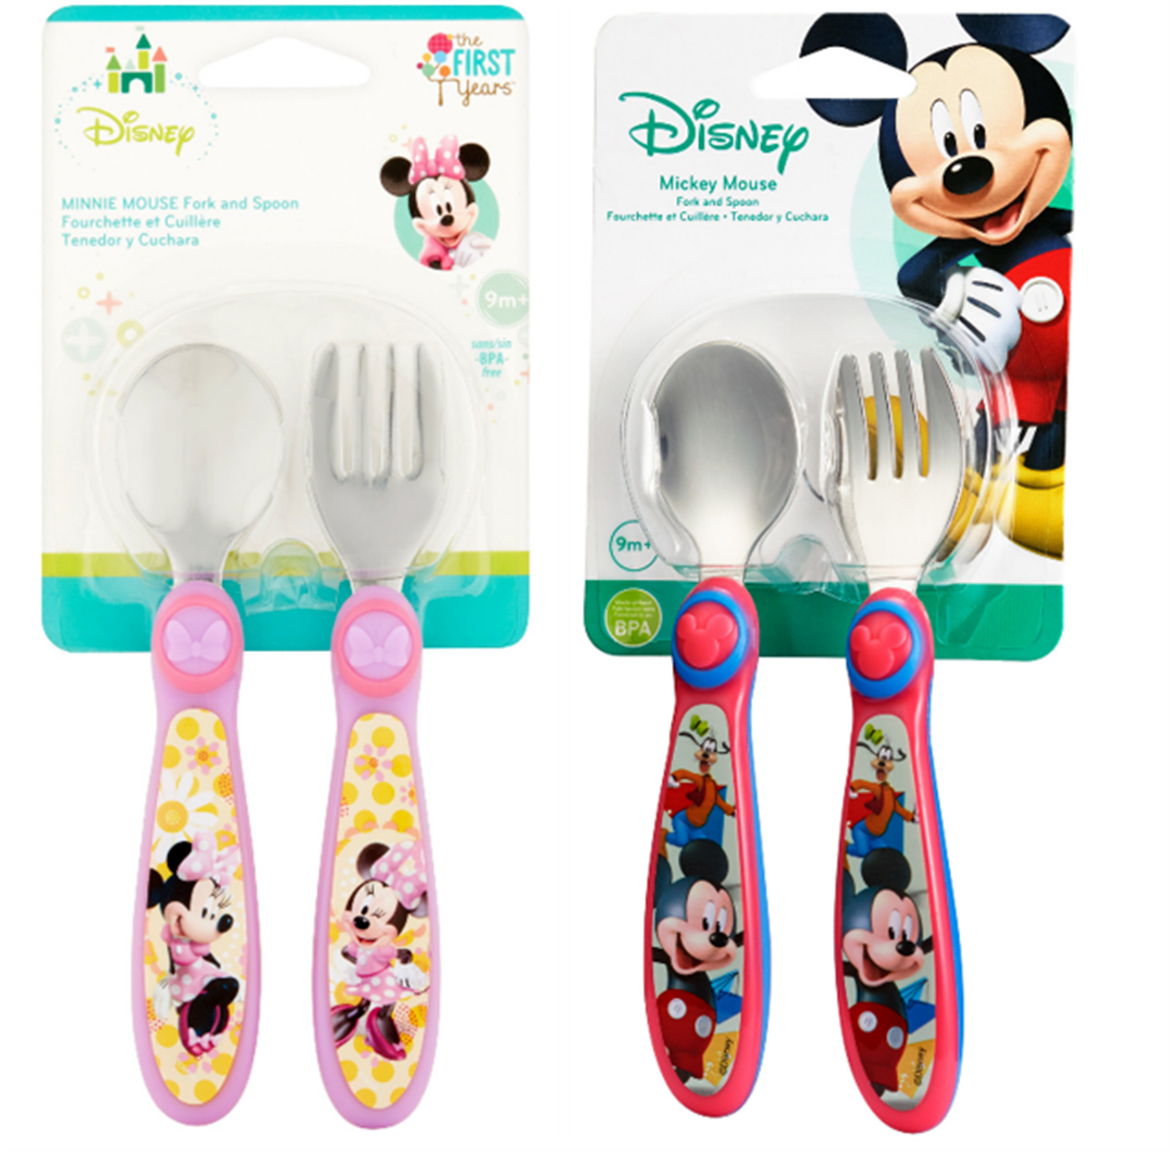 Walmart – The First Years Disney Baby Mickey Mouse Stainless Steel Flatware Only $2.50, Reg 8.99 + Free Store Pickup!